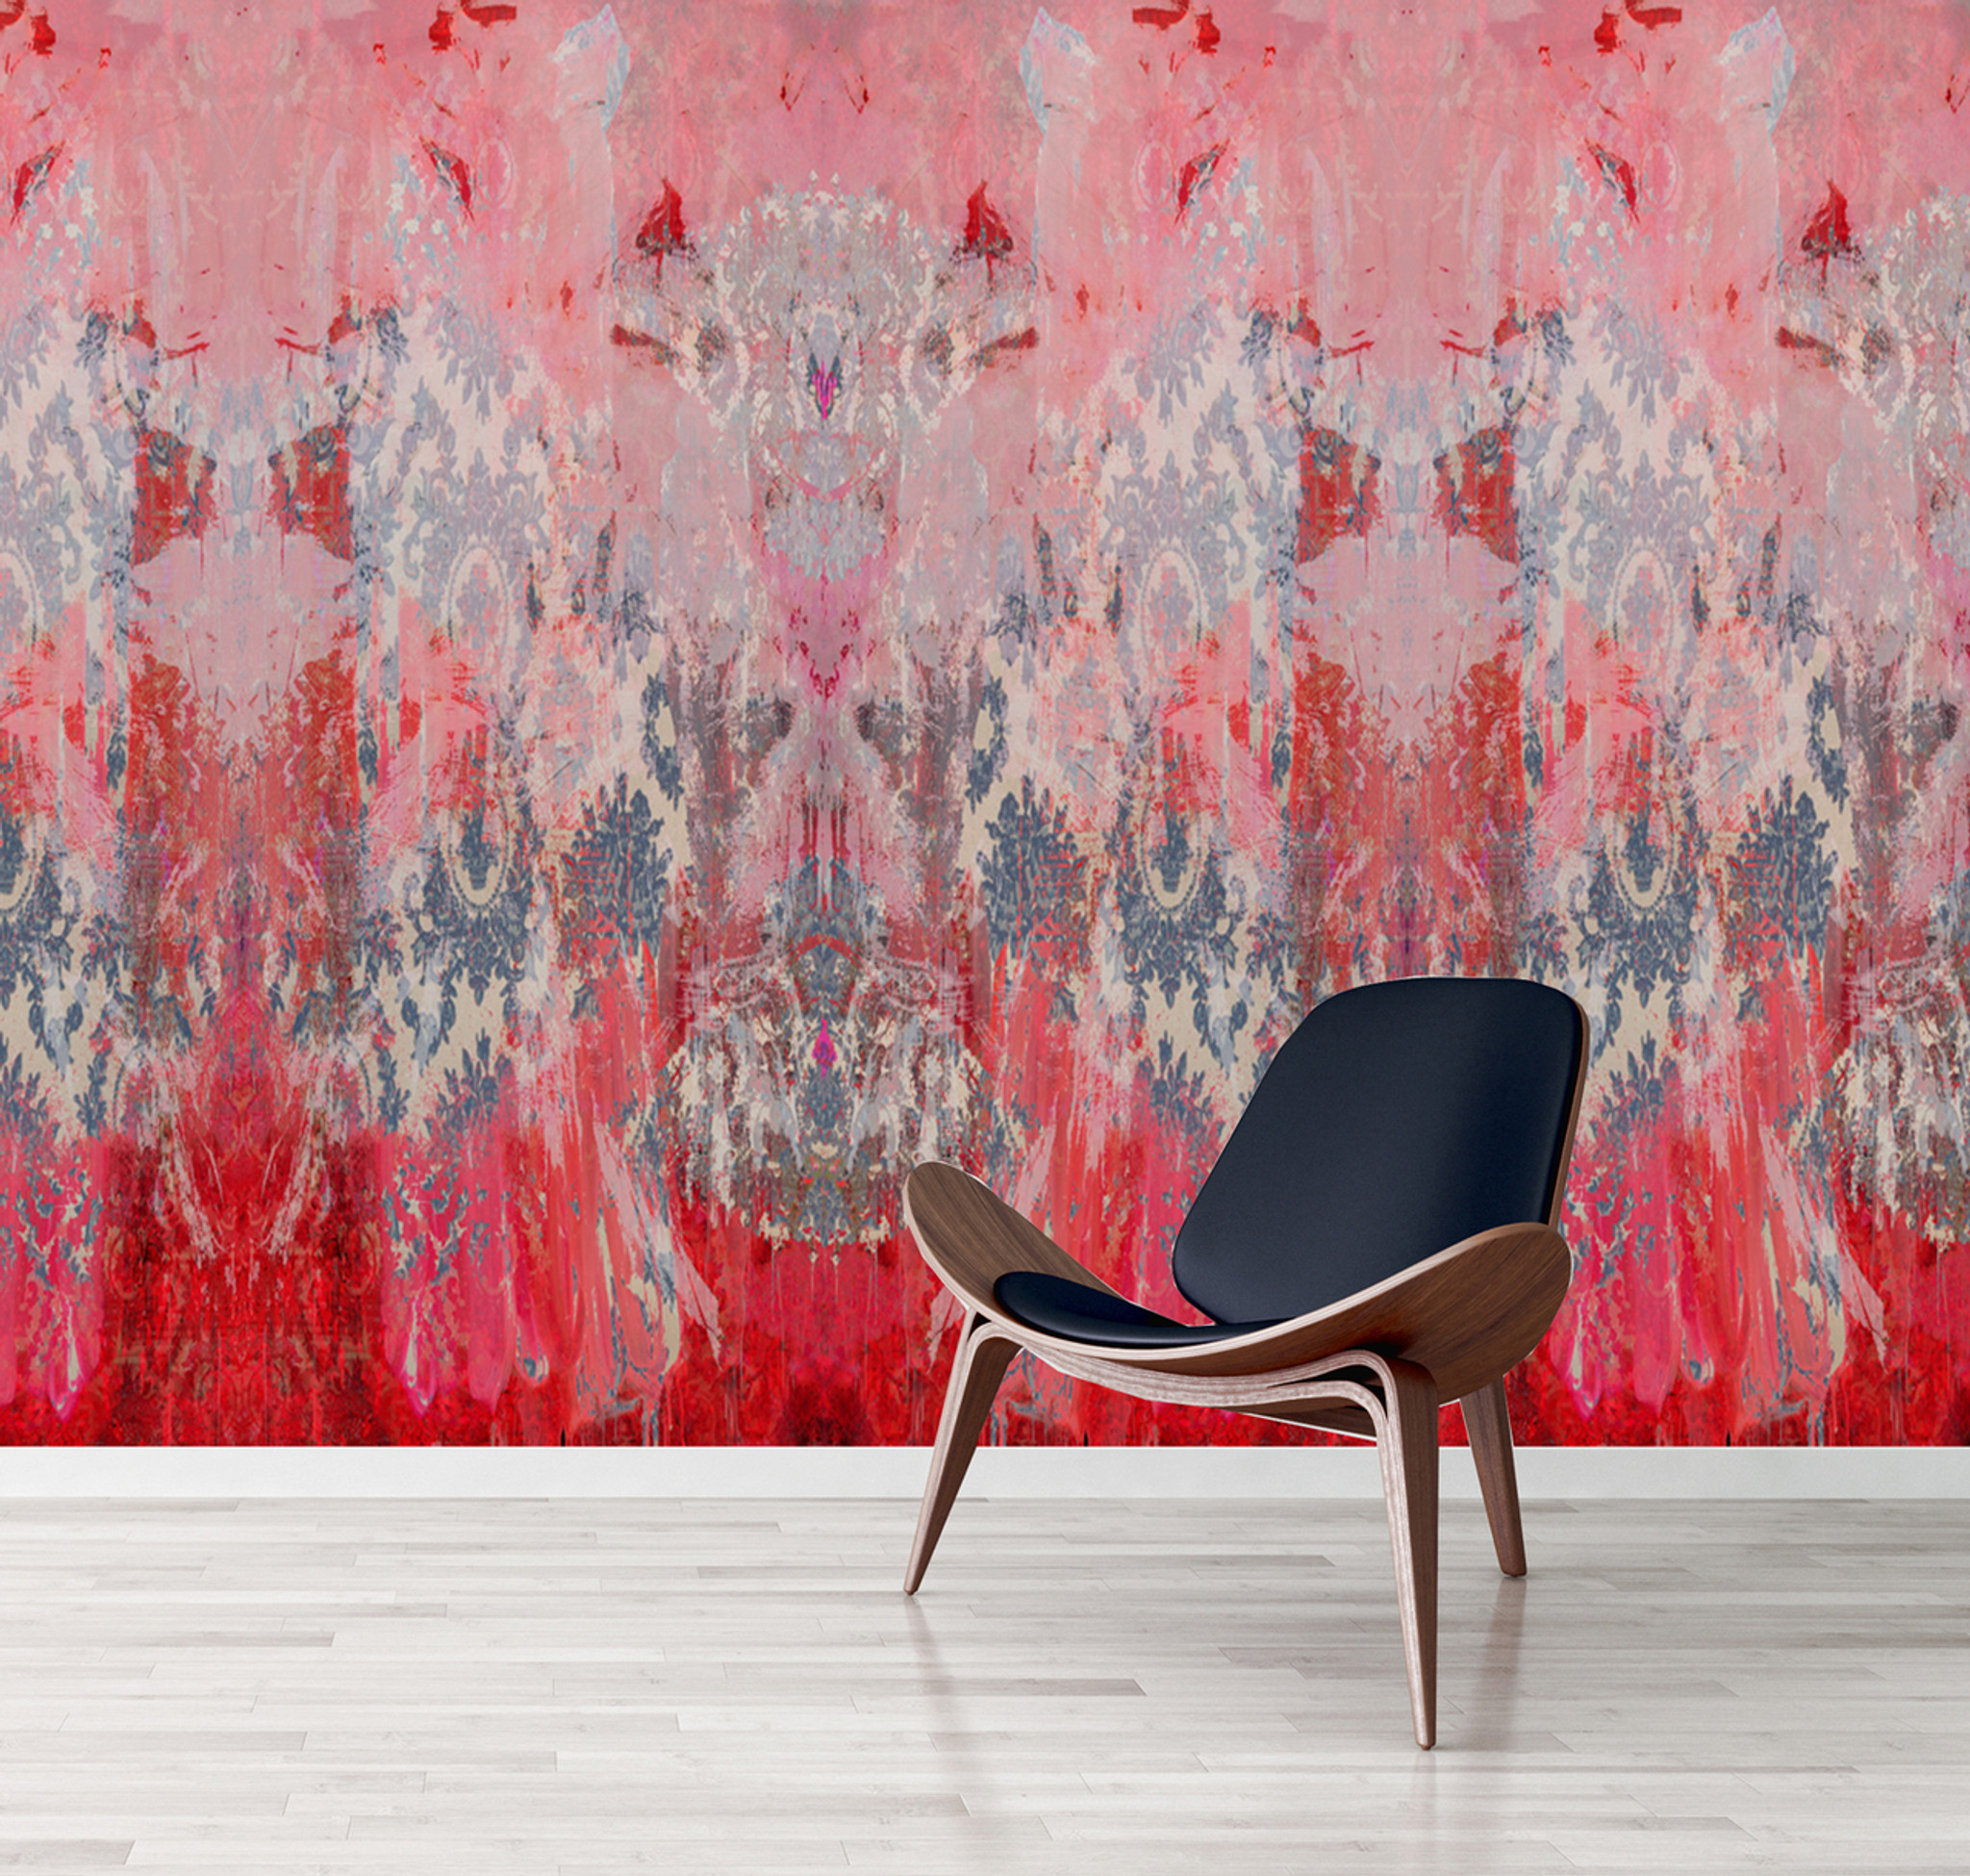 Wallpaper - Damask in Distress - Fading Pink